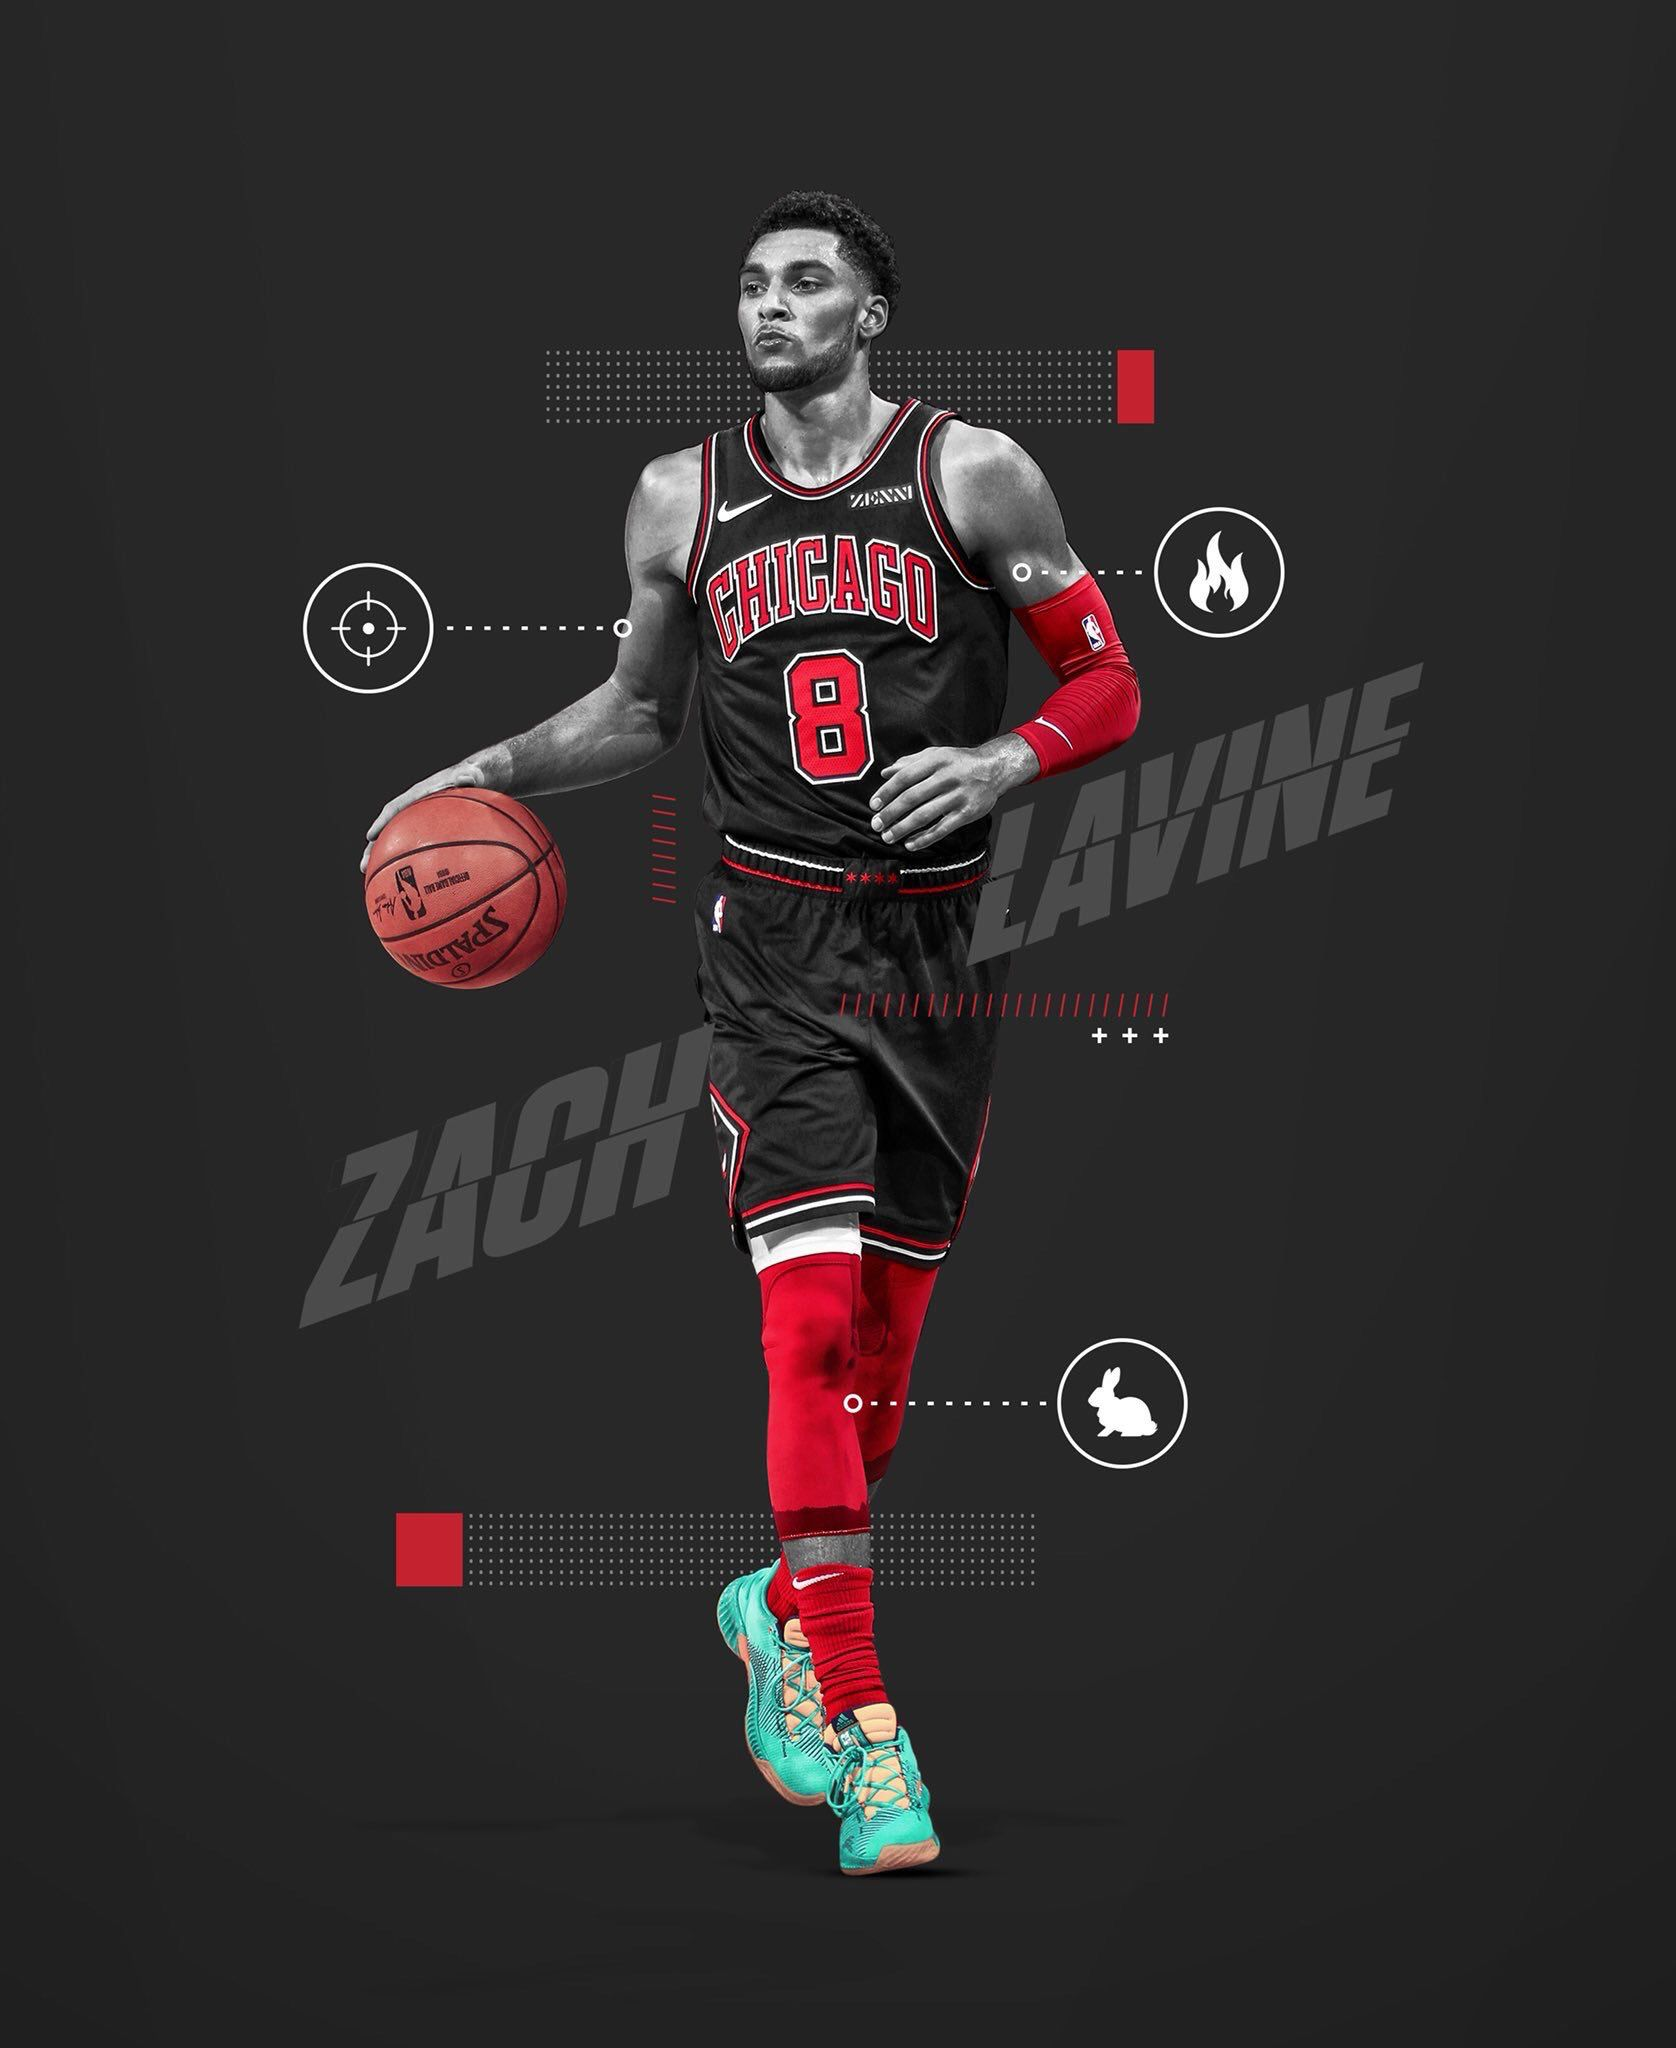 Pin By Mike Lengel On Graphics Sports Graphic Design Sports